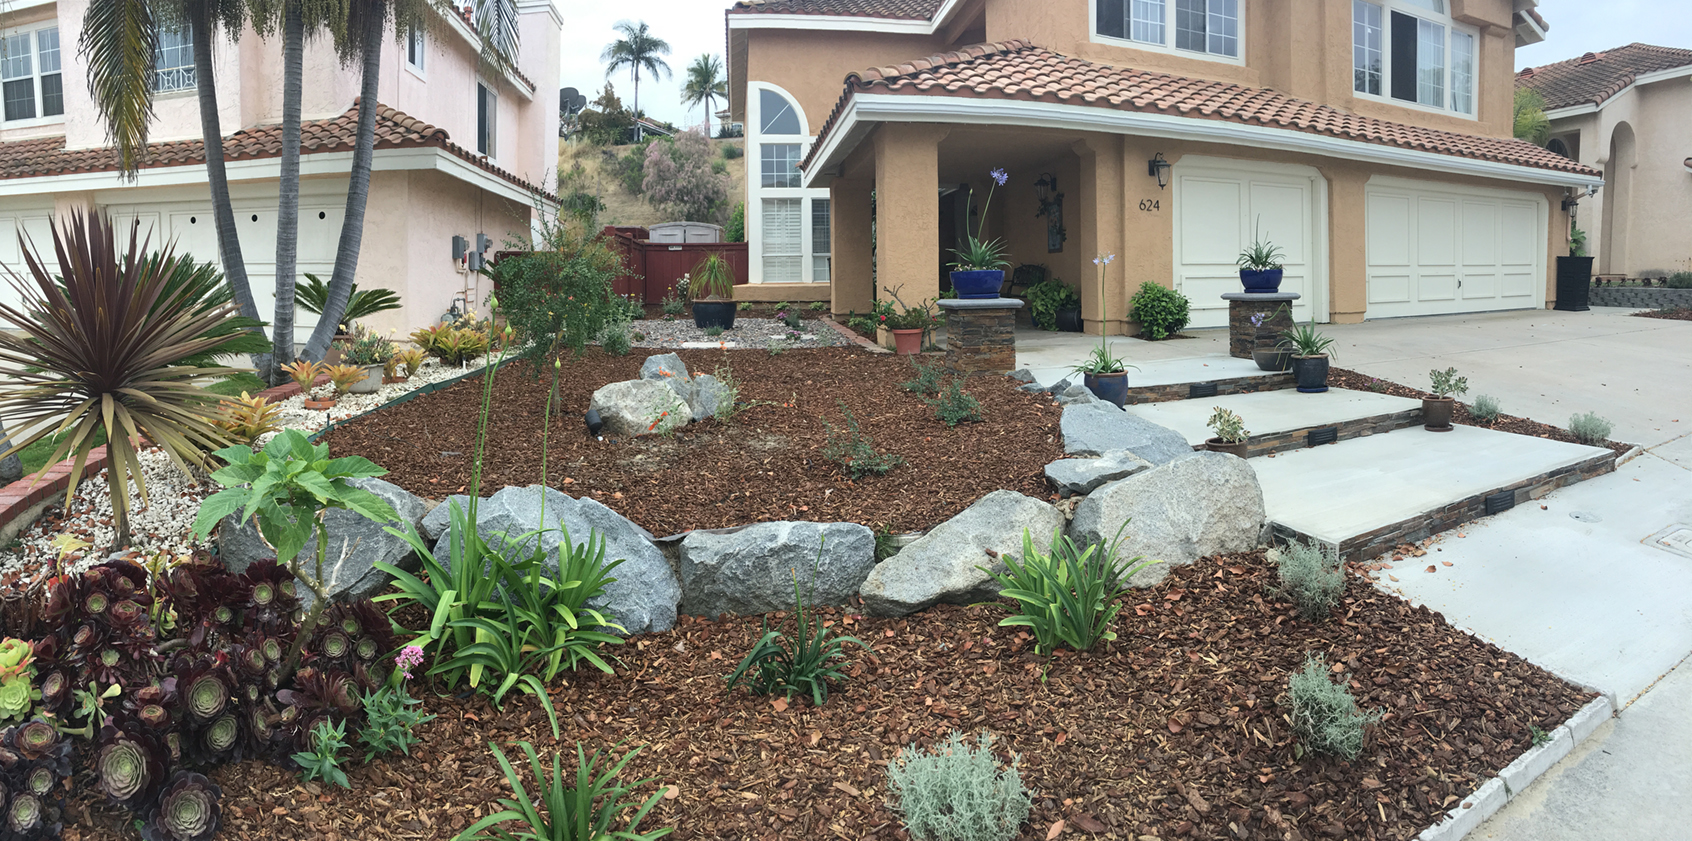 Boulders can add points of interest and slow down water runoff in your landscaping. Photo: Water Authority